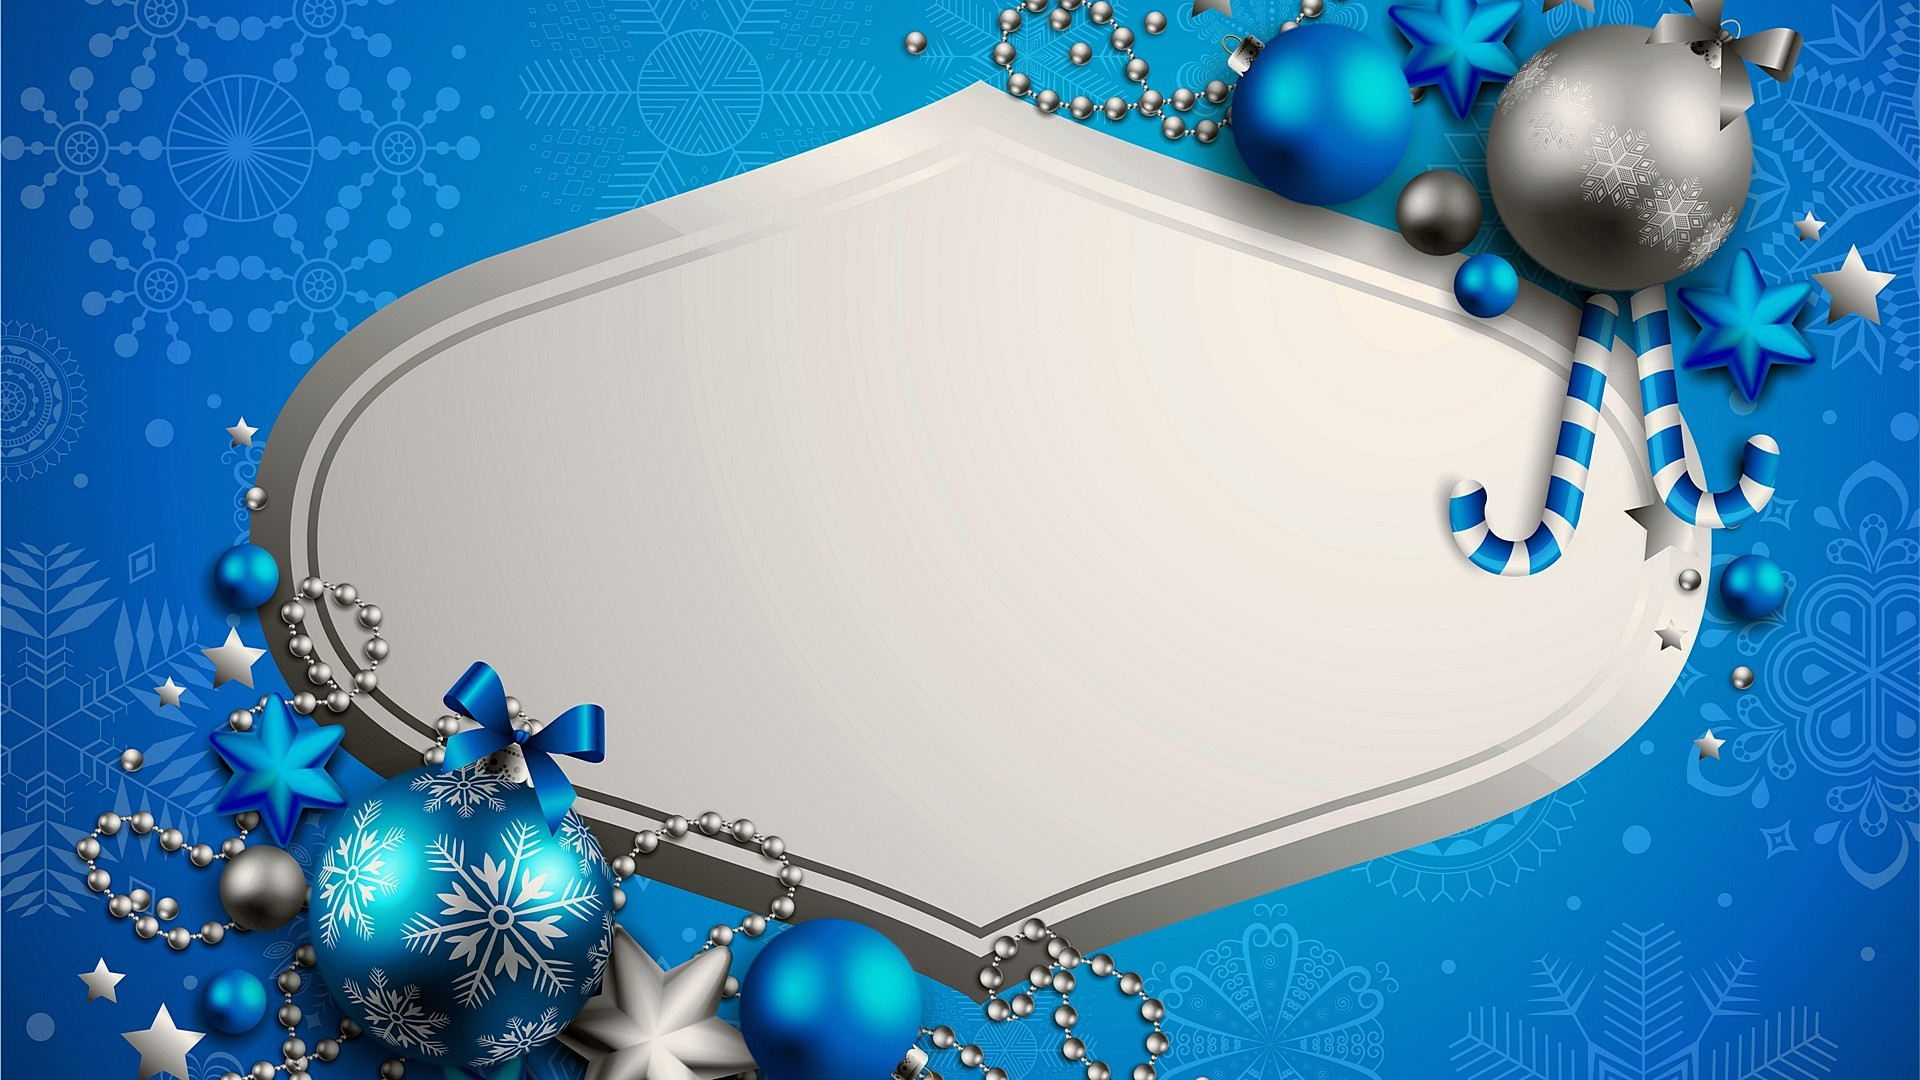 Blue christmas wallpaper 70 images for Where to get wallpaper